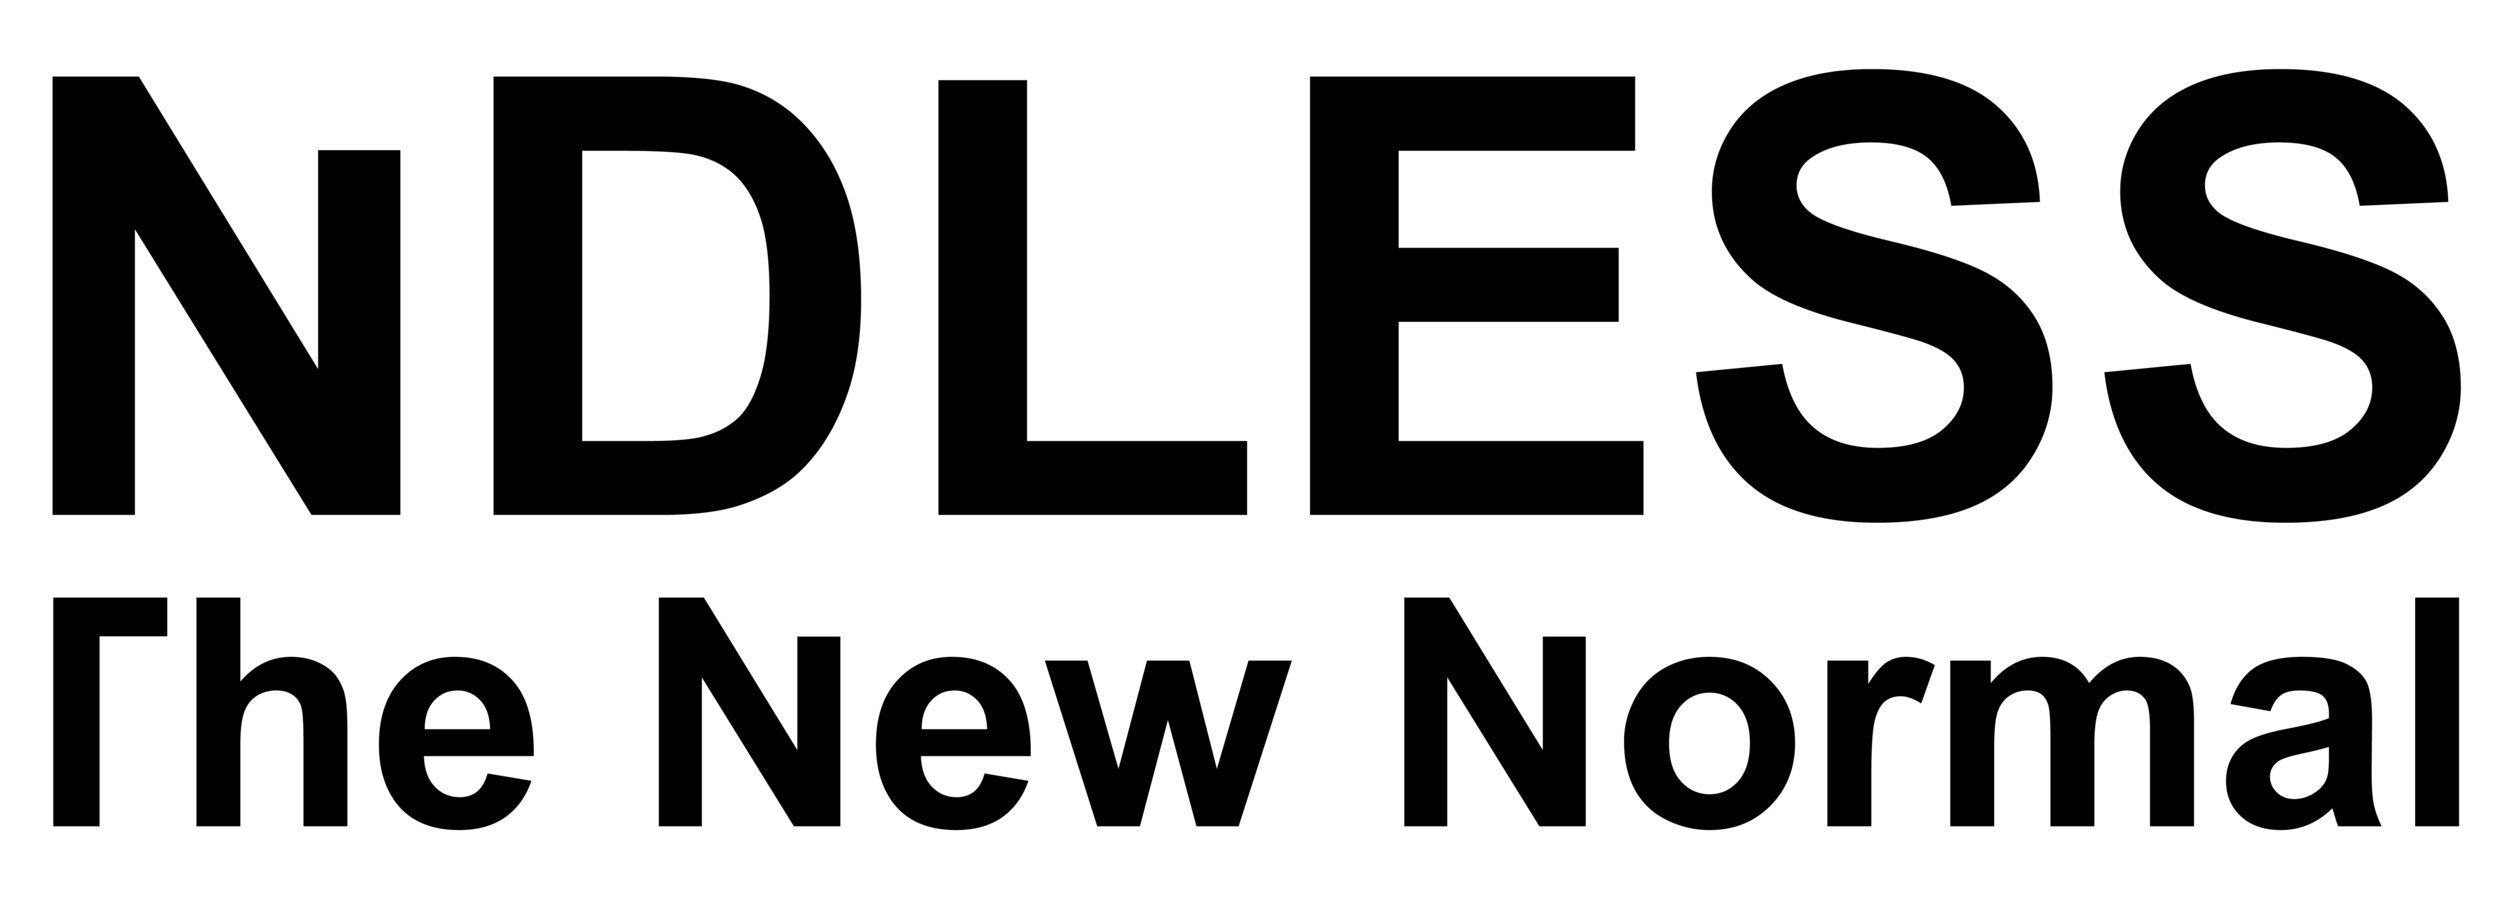 Ndless-Logo-Blk_1500px.png